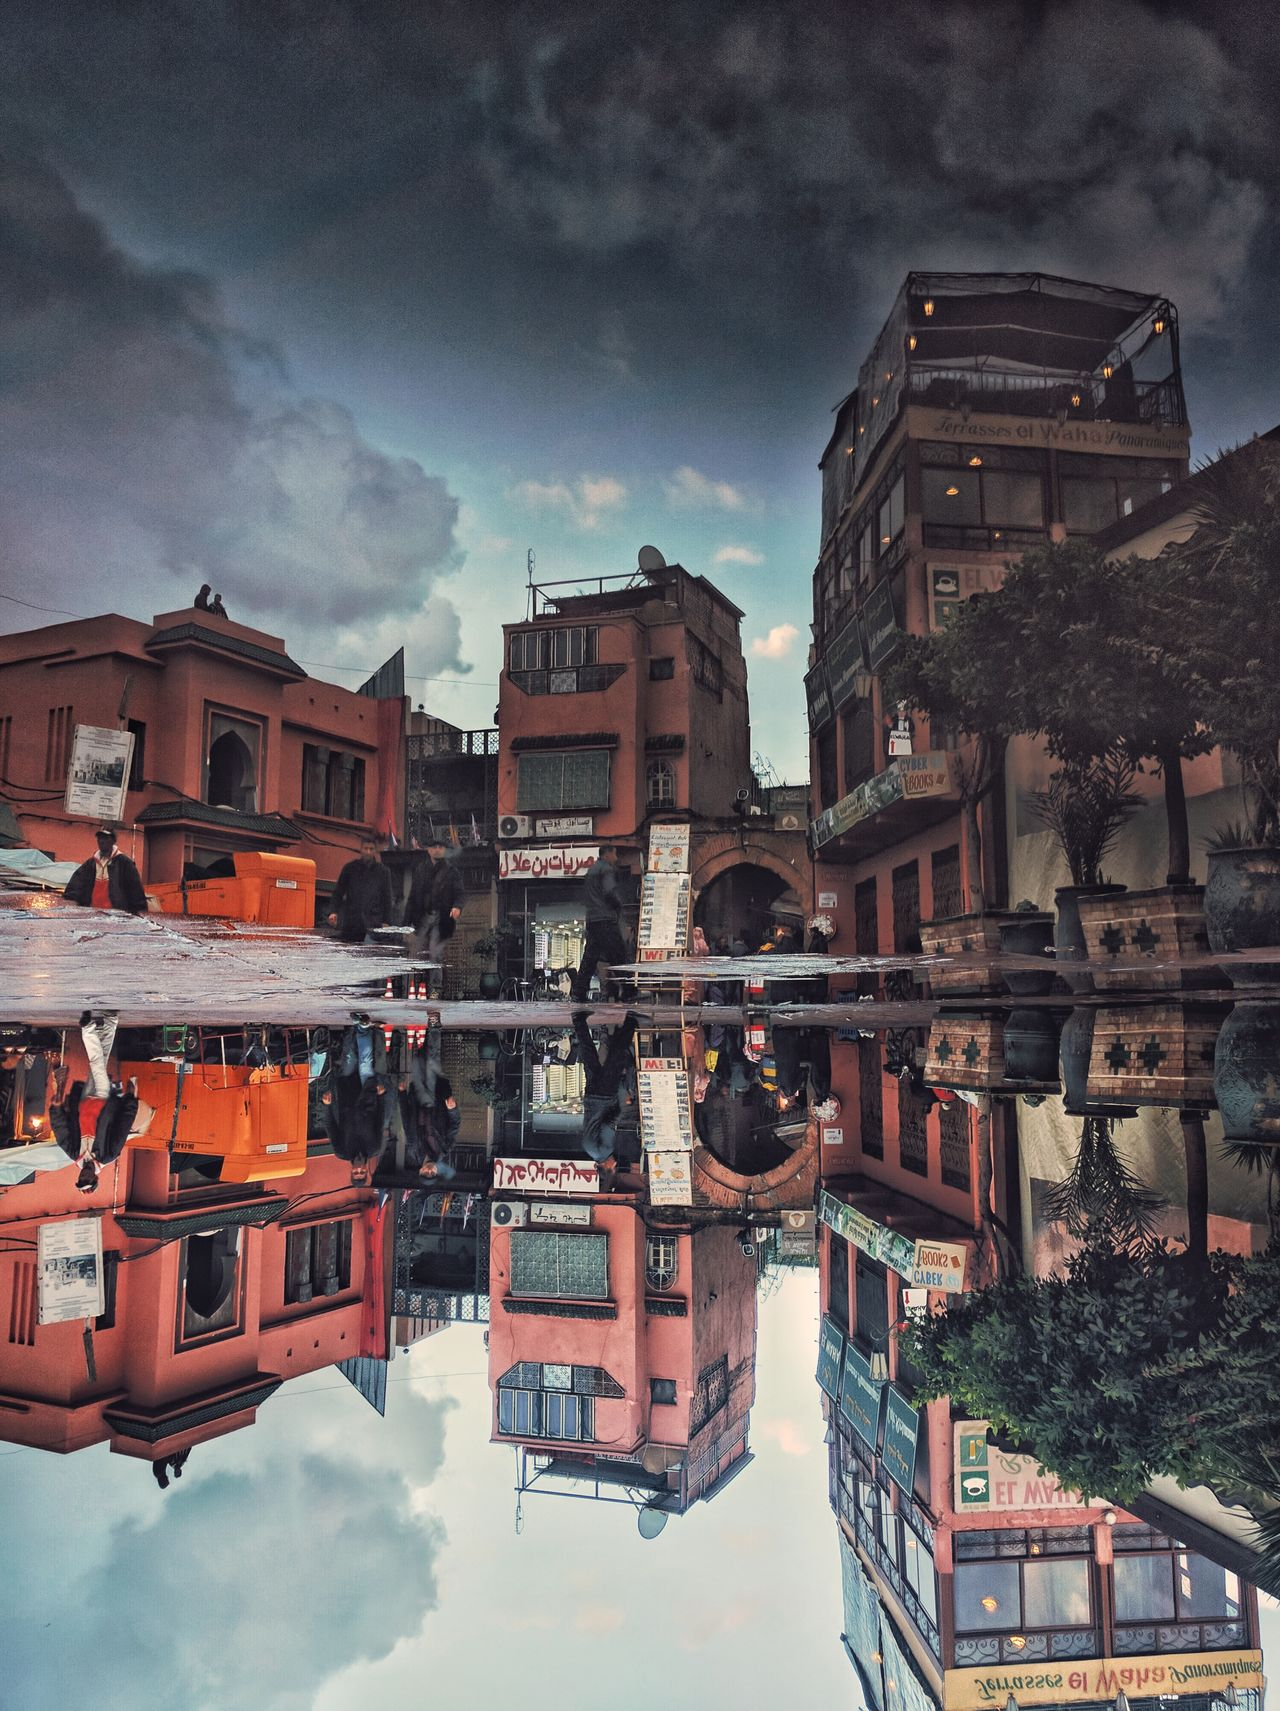 Reflection Building Exterior Architecture Sky Built Structure City Travel Destinations Water City Life Outdoors Cityscape Medina Streetphotography Marrakech, Morocco Morocco_travel Morocco Street Cultures Marrakesh Lifestyles Local Landmark Architecture Buildingstyles Buildings & Sky Low Angle View